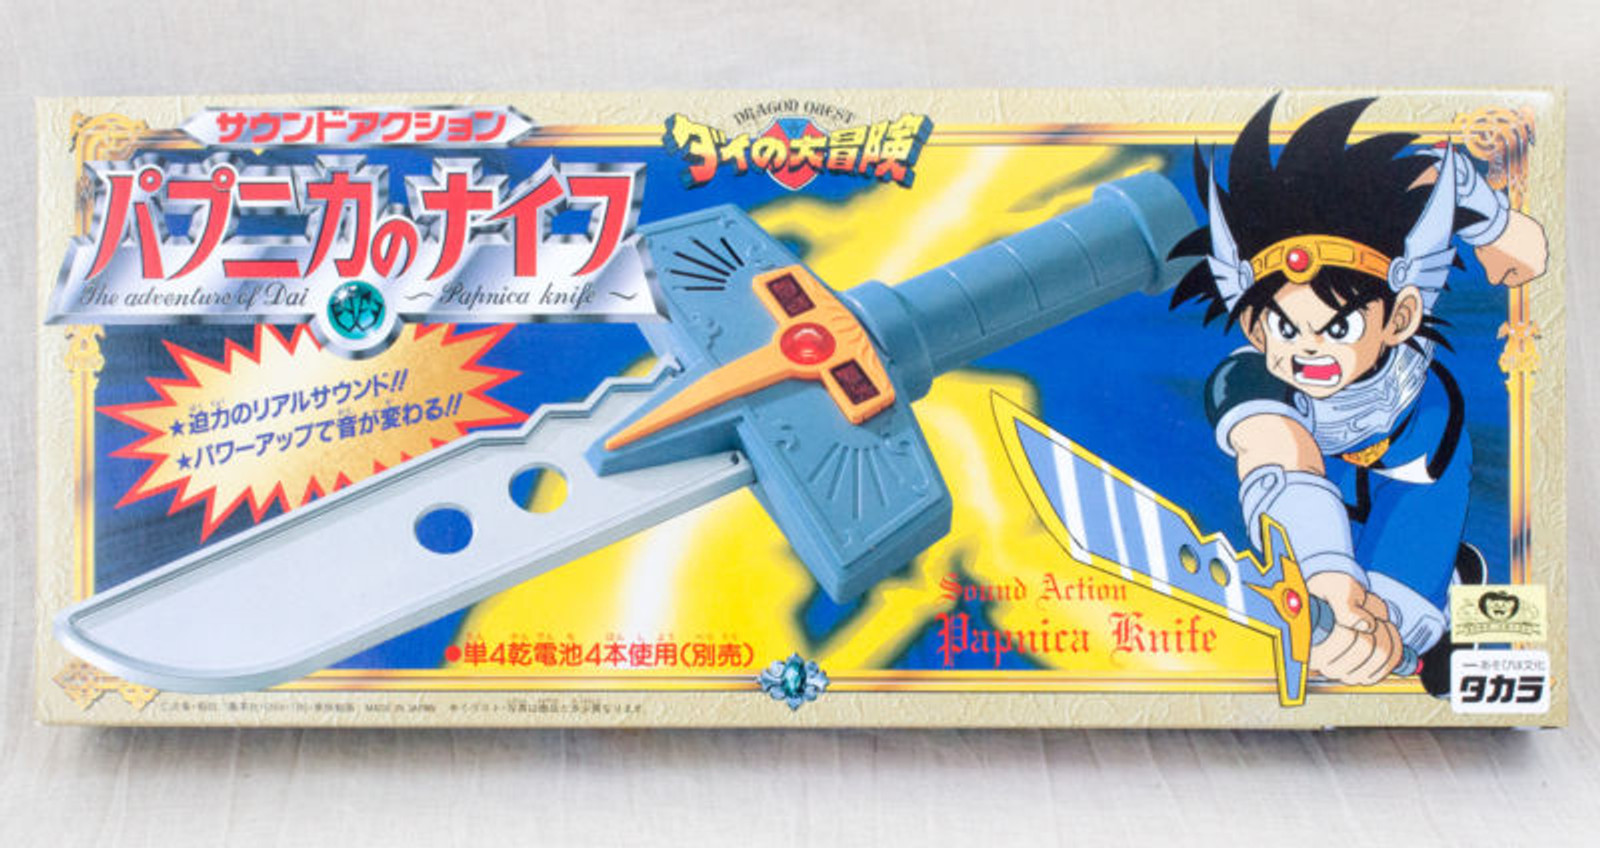 Dragon Quest: The Adventure of Dai Papnica Knife Sound Action Figure TAKARA